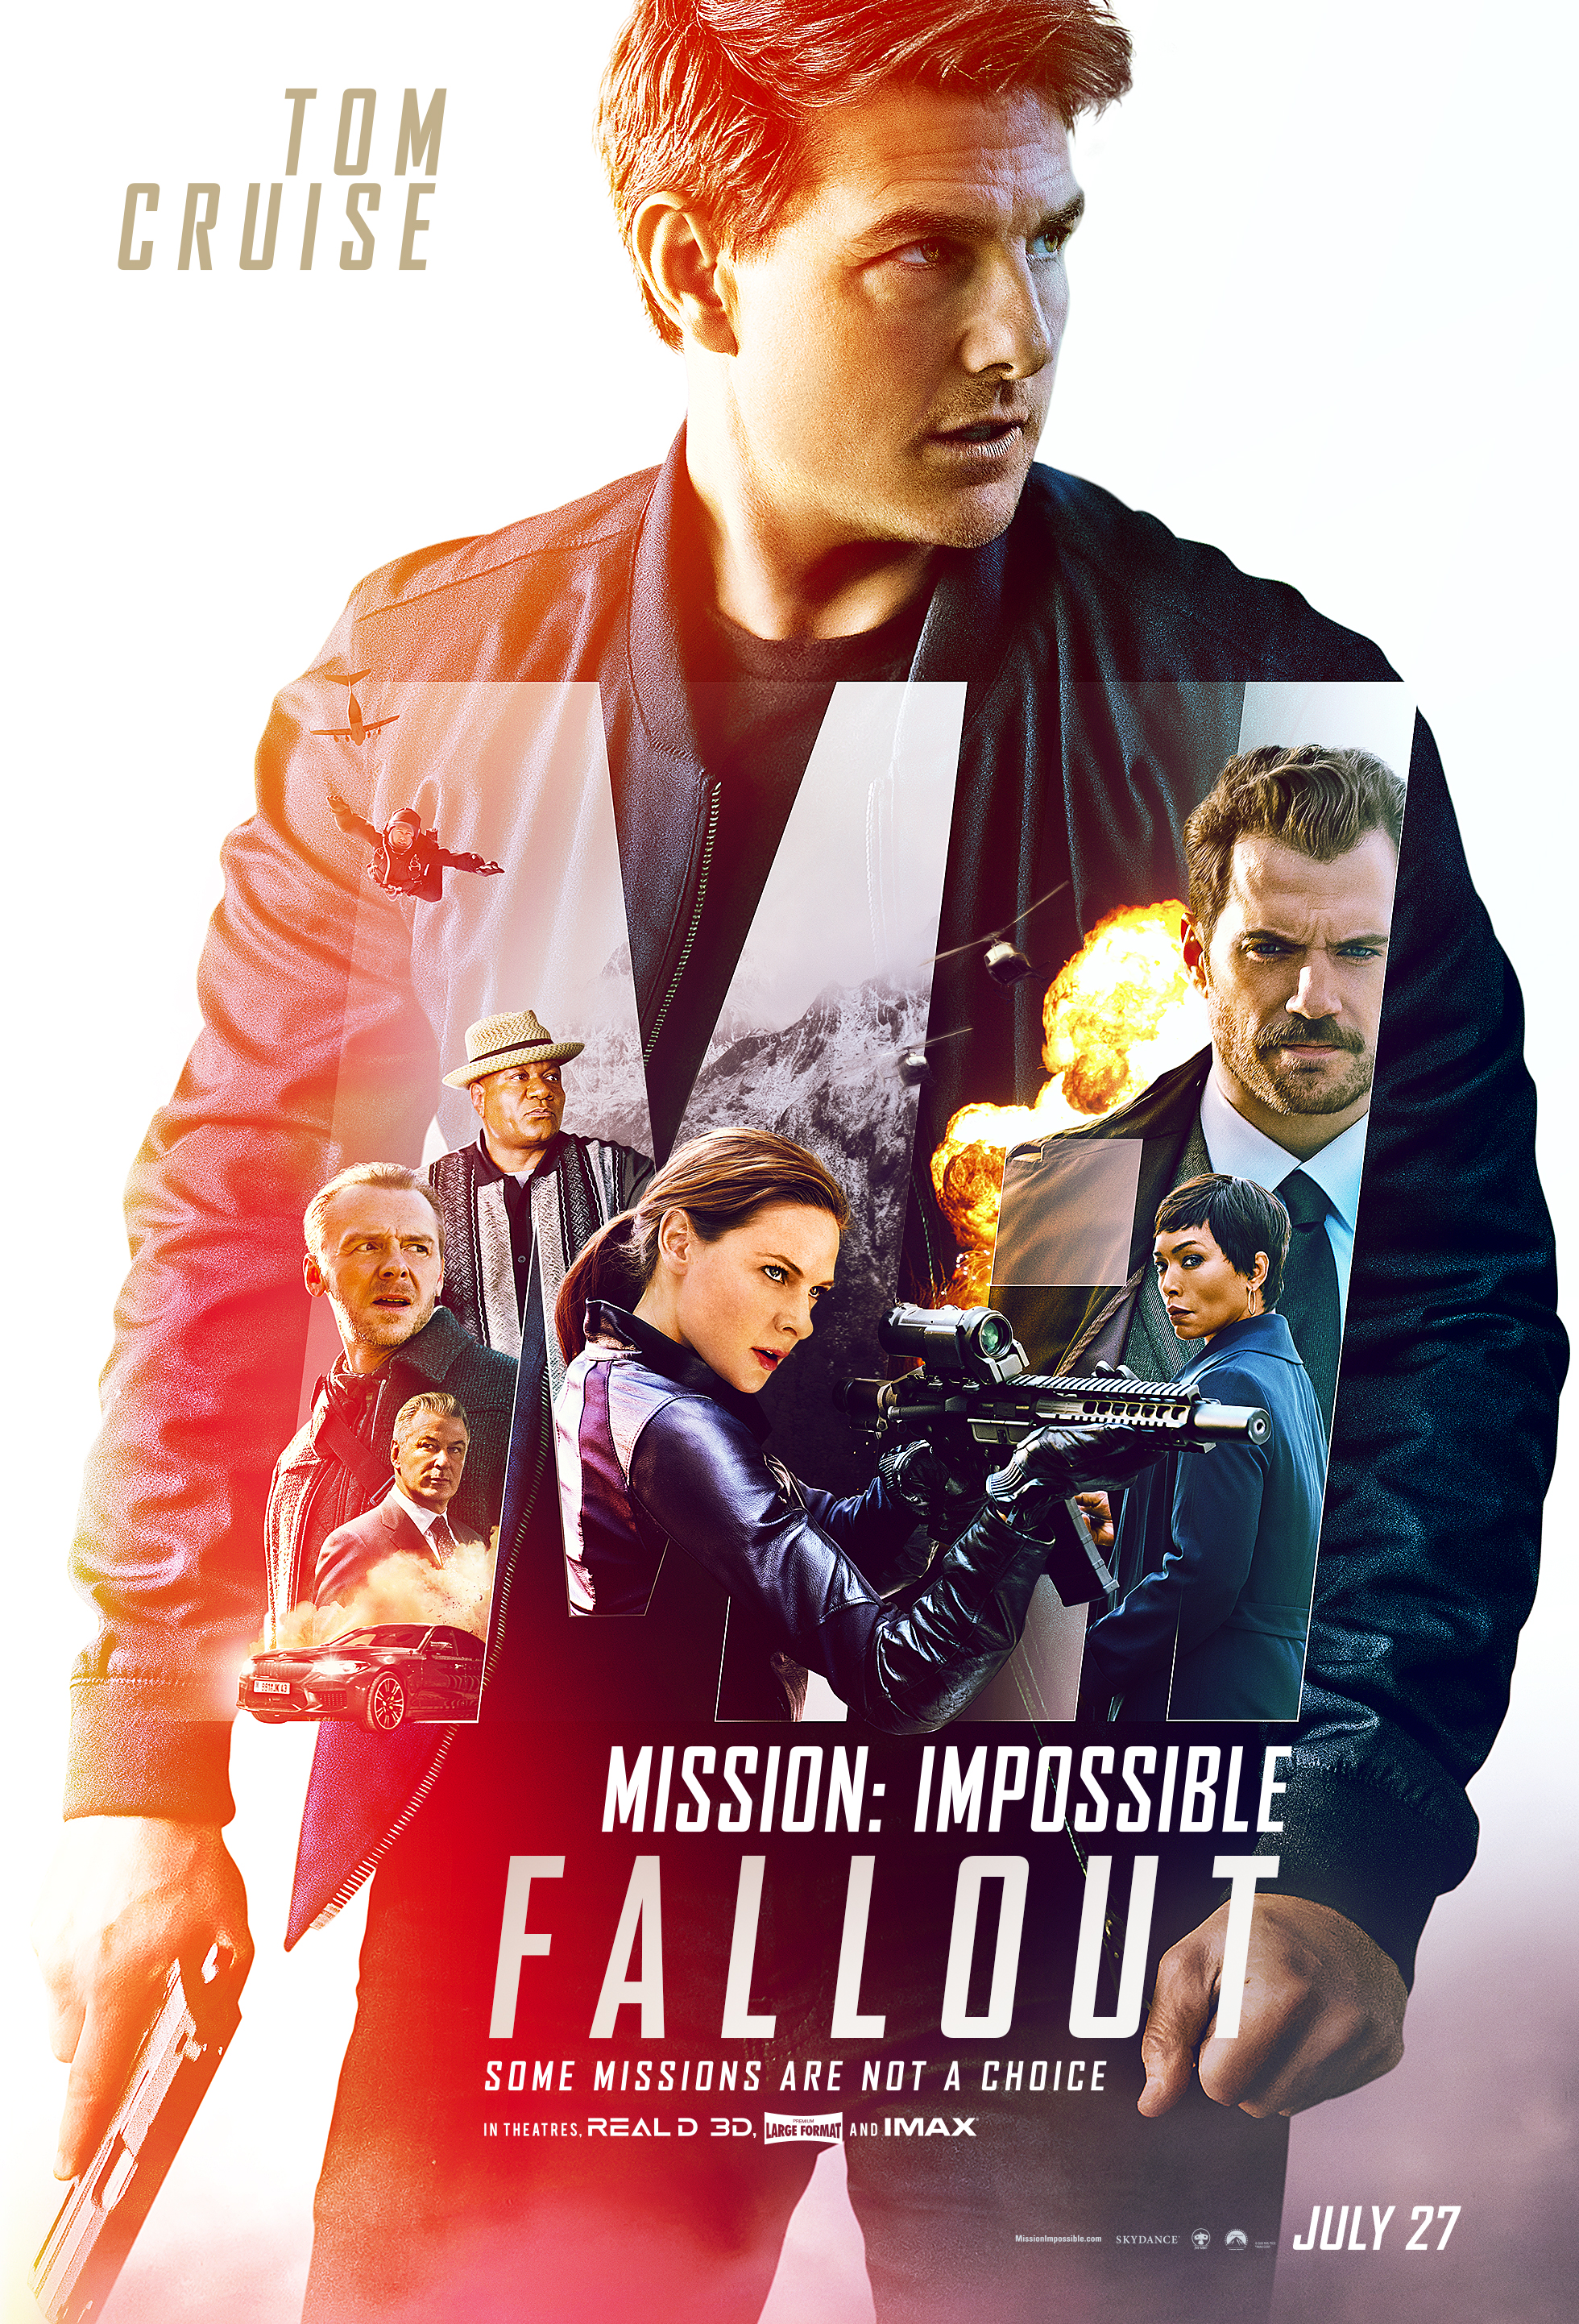 Mission Impossible Fallout (Plus Two Other Movie Reviews)